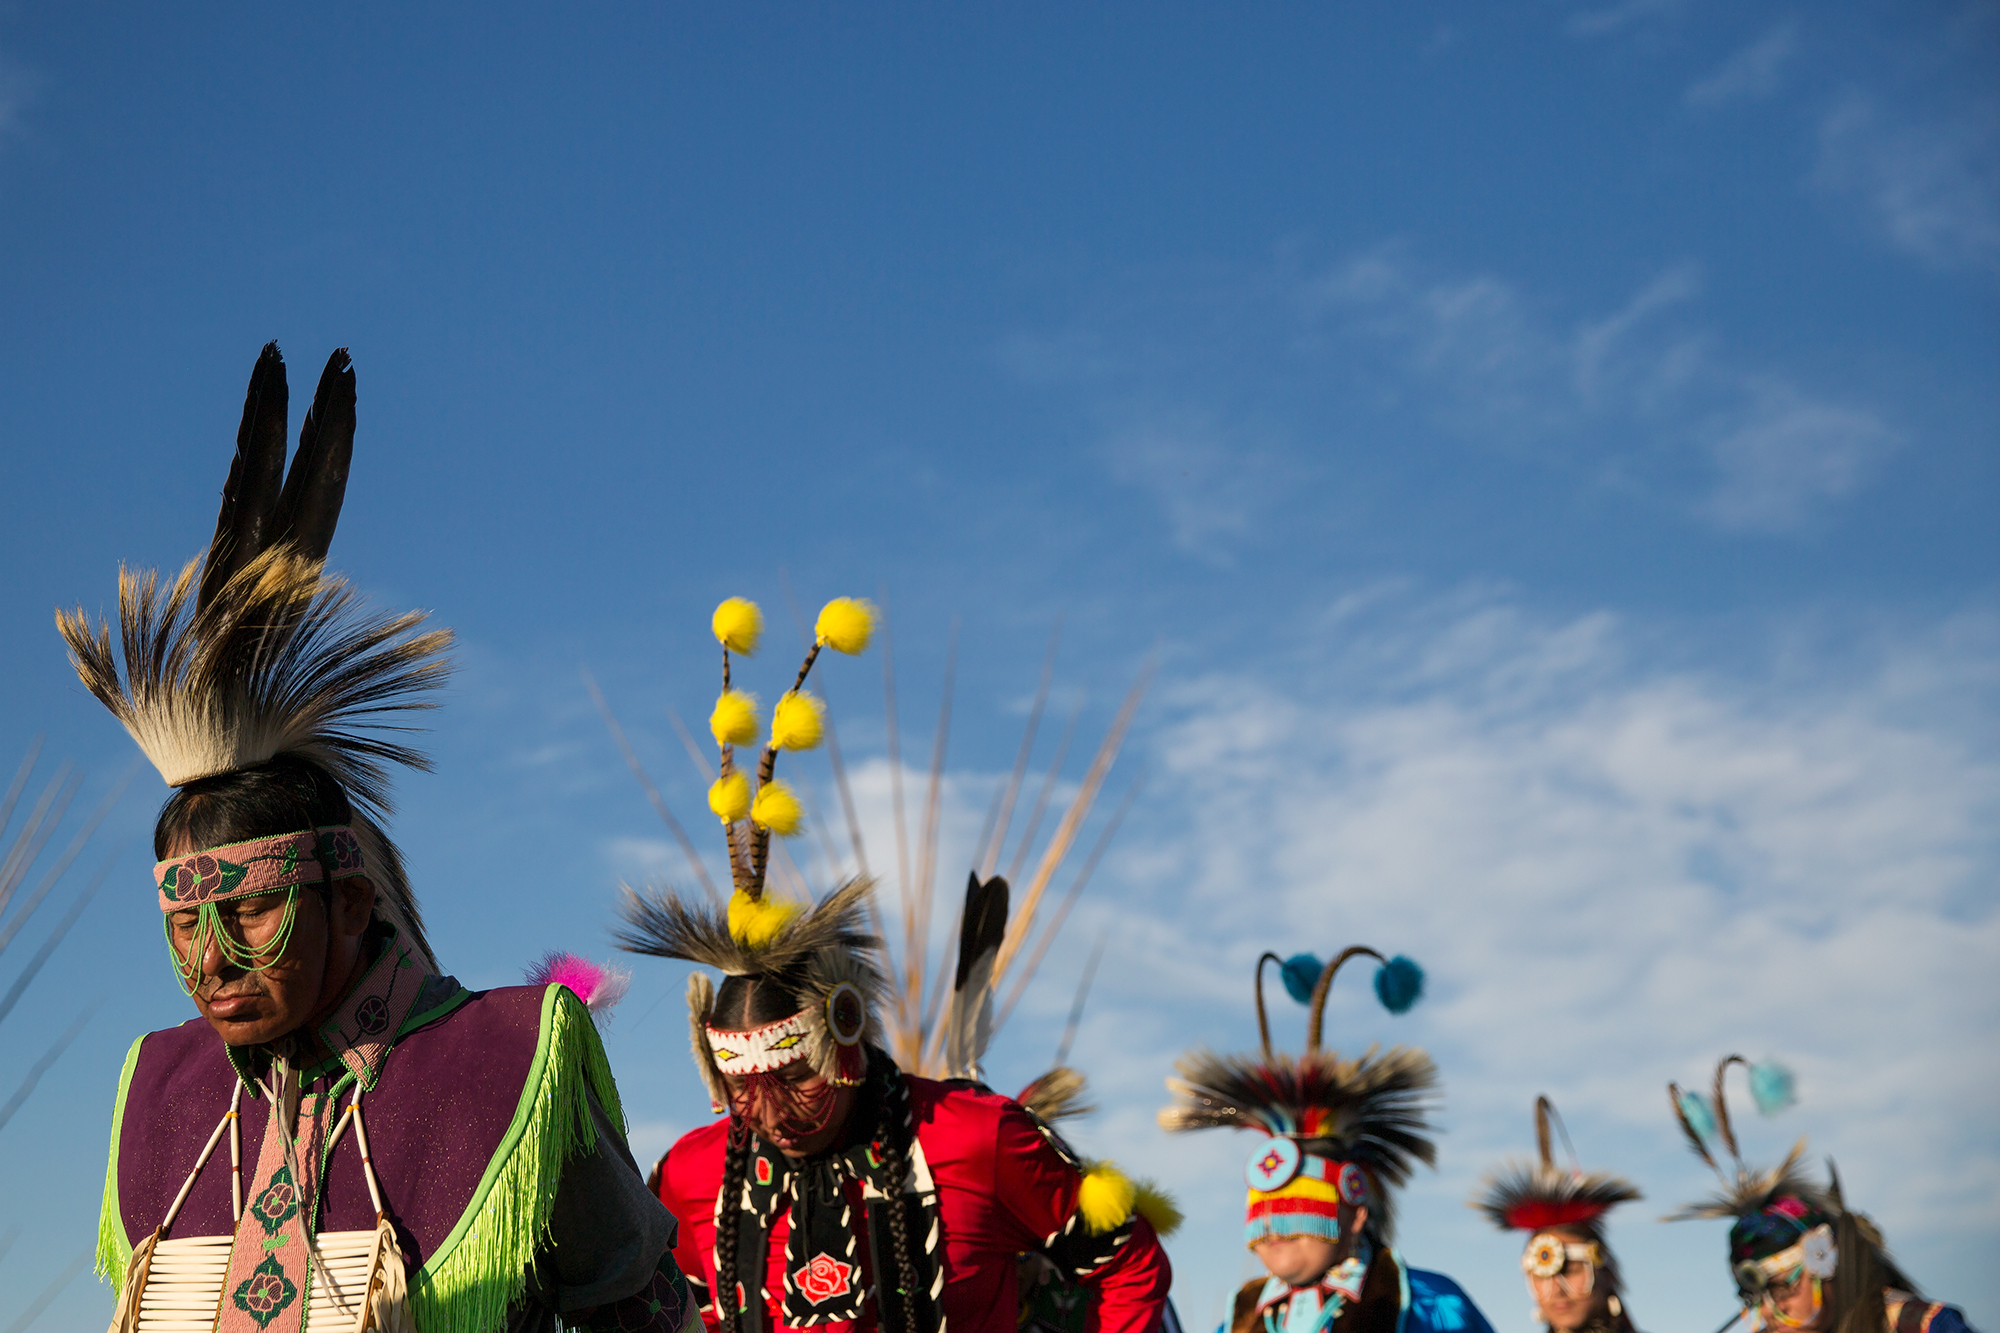 Dancers prepare to enter the arena during North American Indian Days in Browning, Montana.